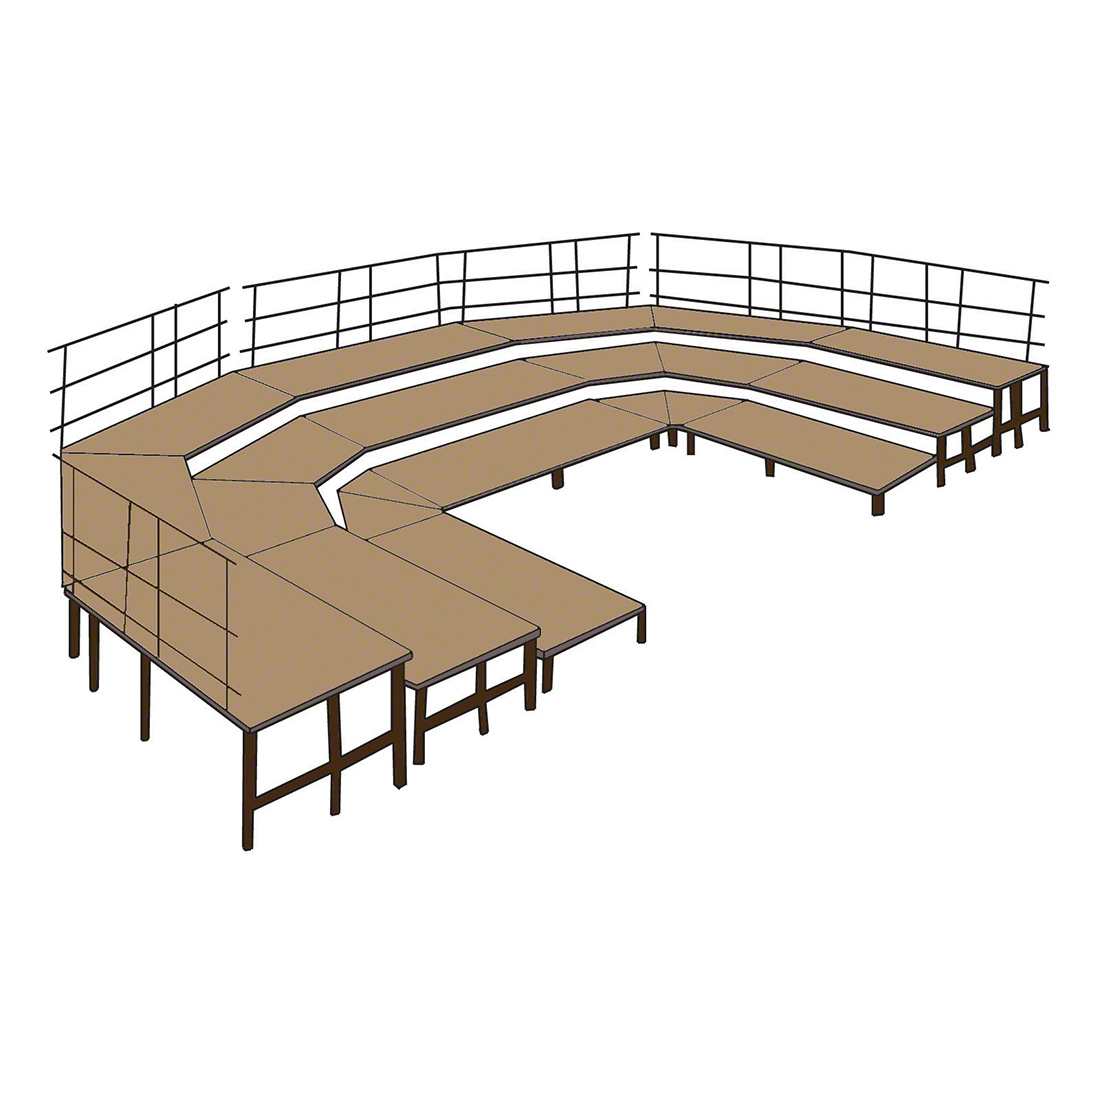 national public seating 3 tier seated riser stage section hardboard 48 deep - National Public Seating